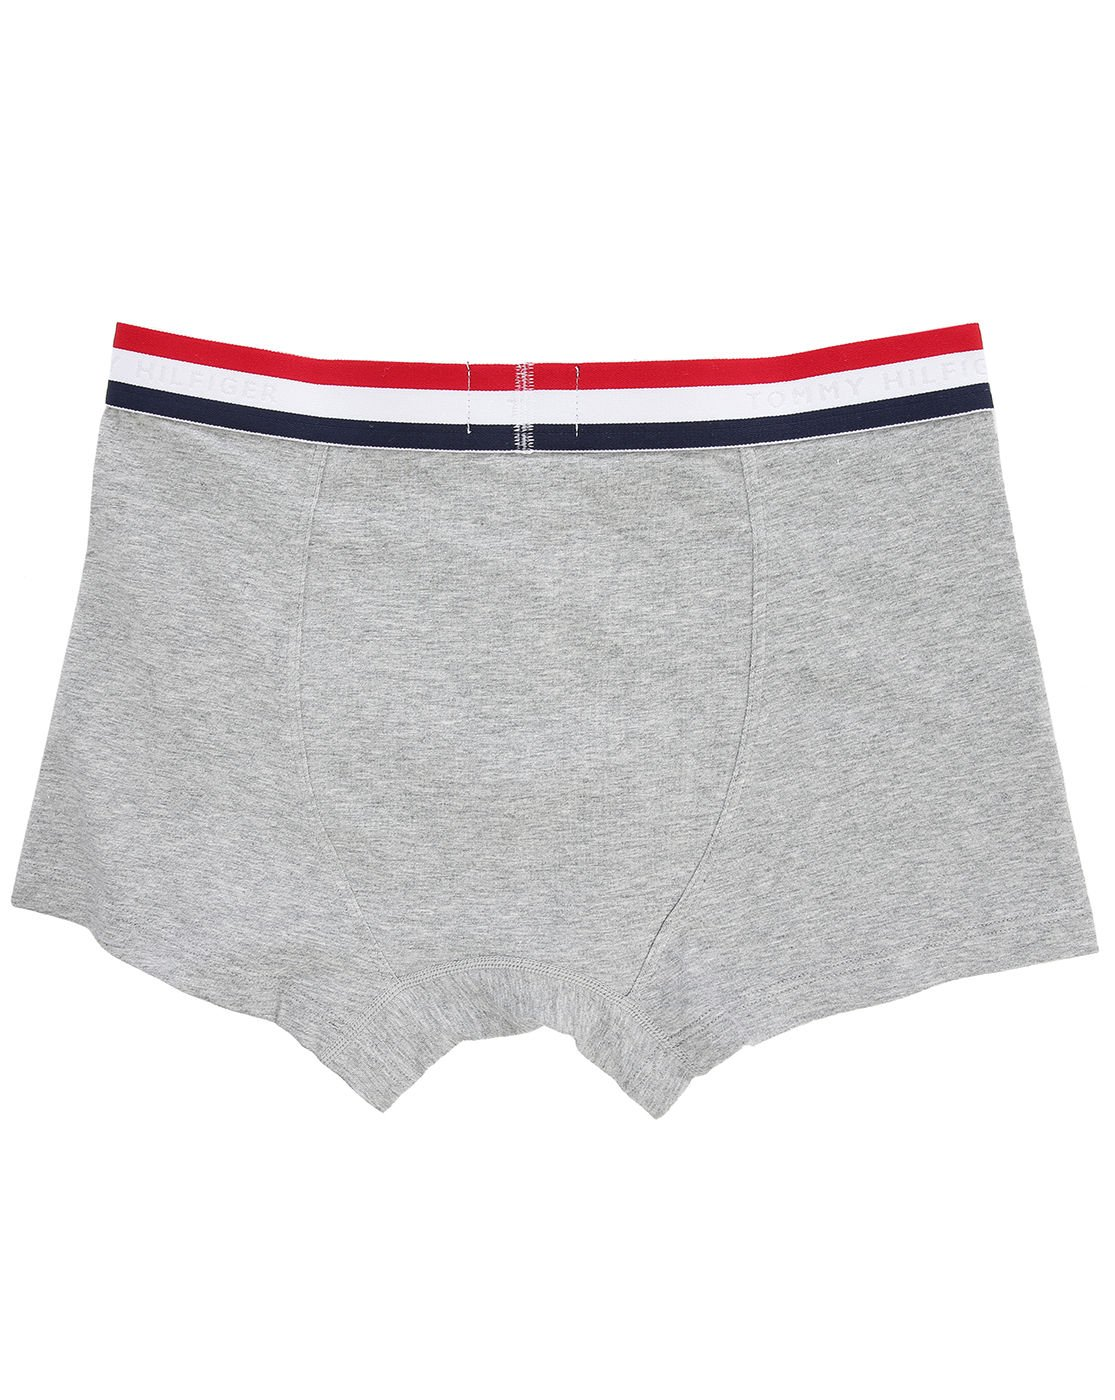 tommy hilfiger organic cotton grey boxer shorts with tricolour waistband in gray for men grey. Black Bedroom Furniture Sets. Home Design Ideas